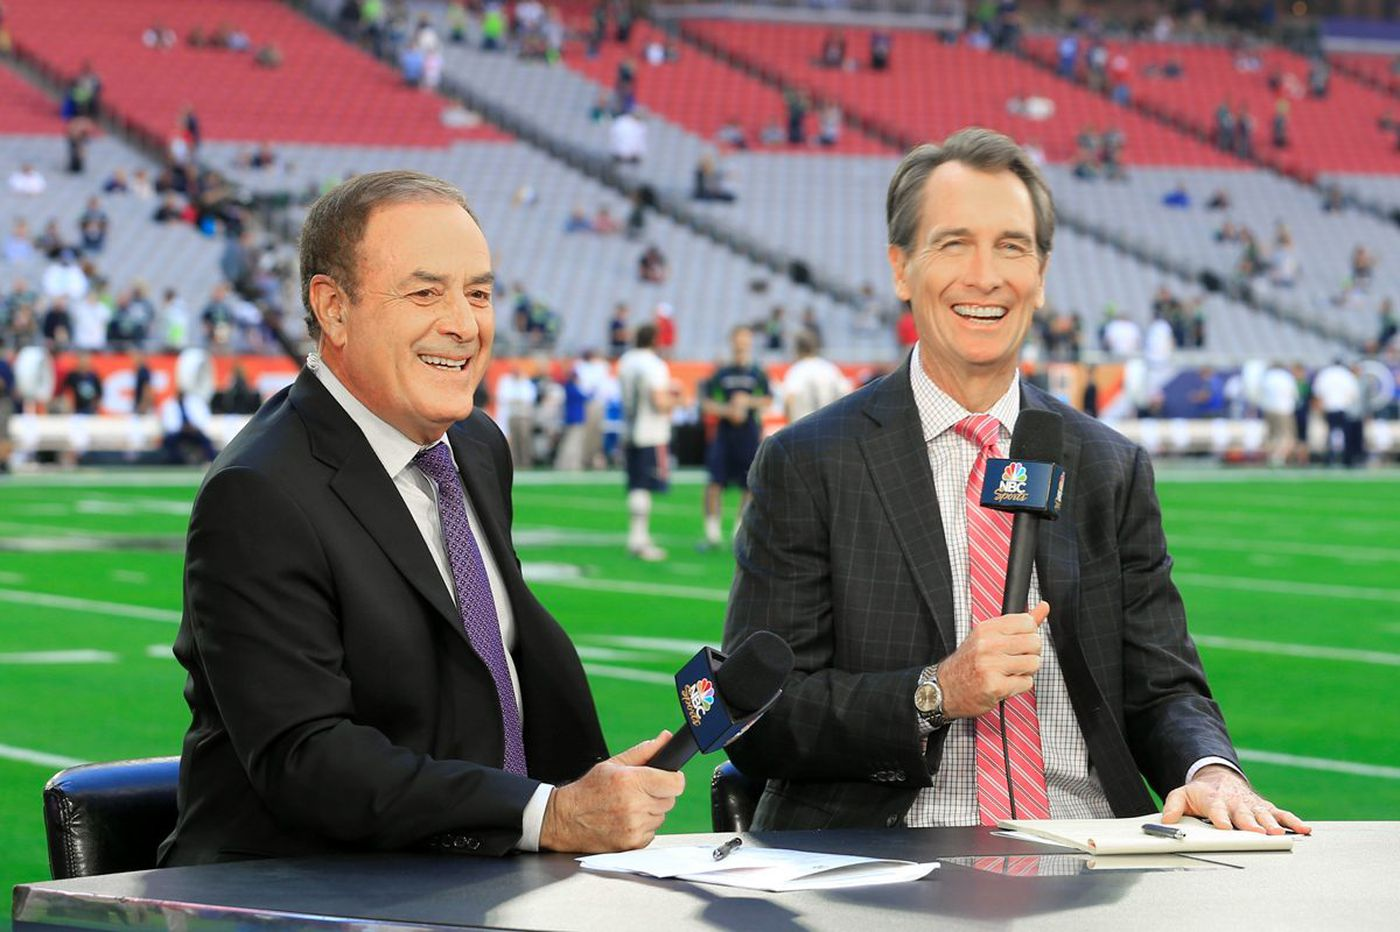 NBC broadcaster Al Michaels on the Eagles, NFL ratings declines and Tony Romo